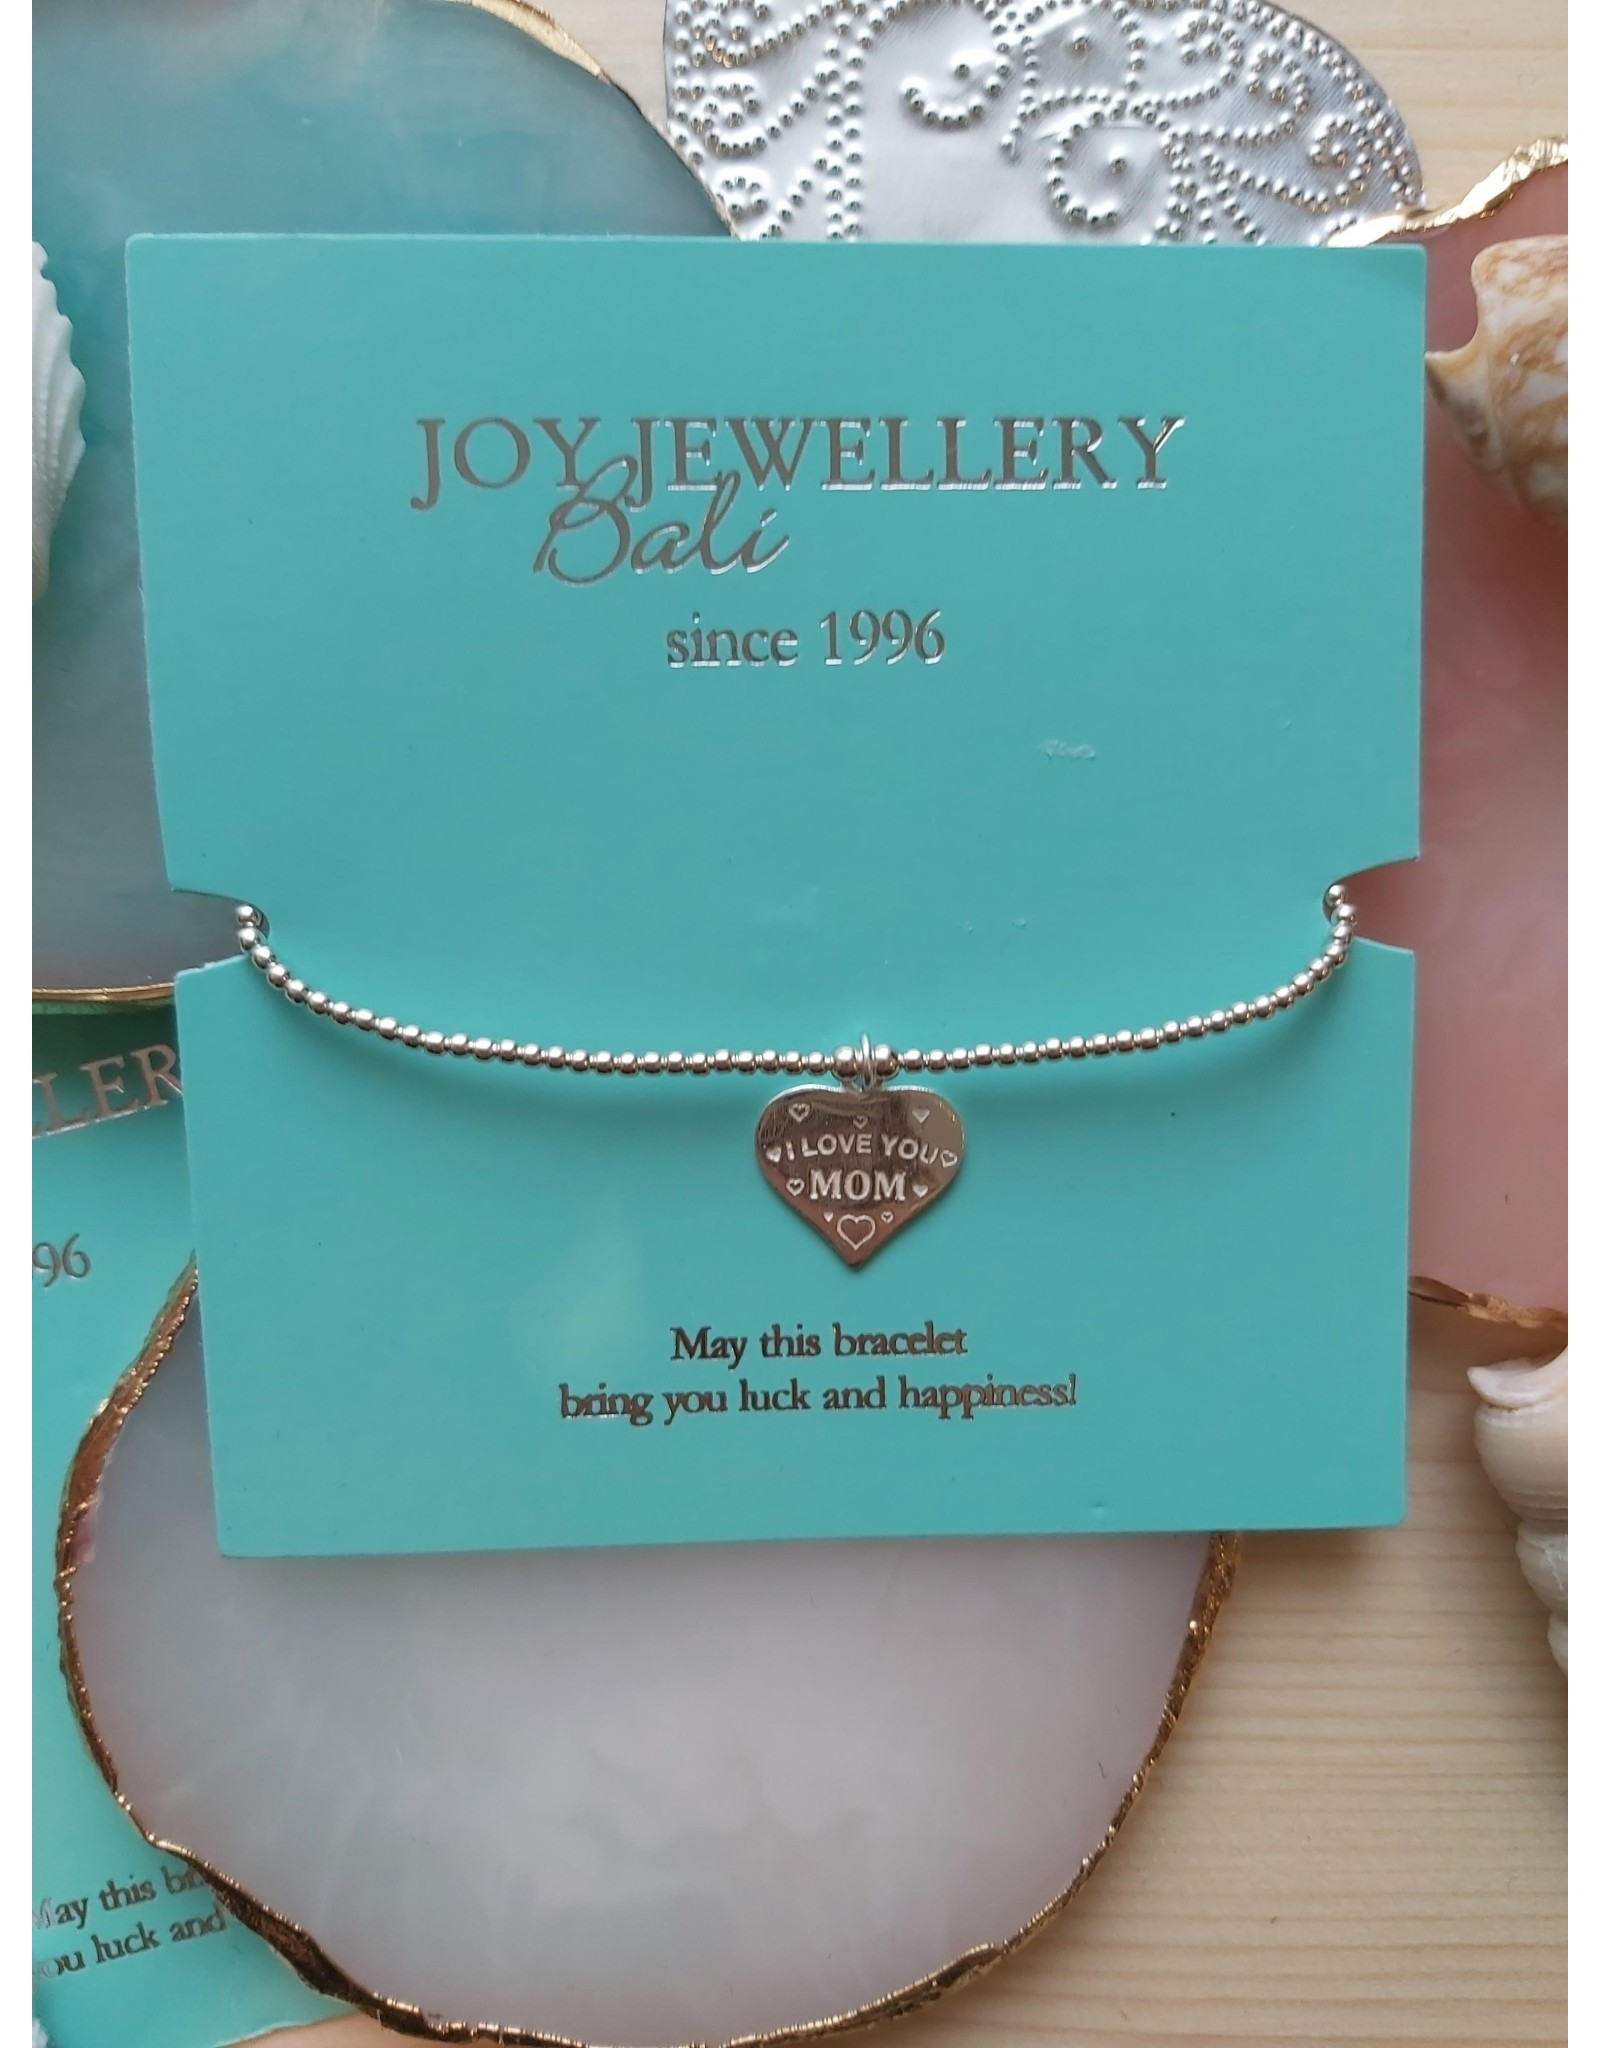 Joy Bali JOY Tiny Wish armband I love you MOM